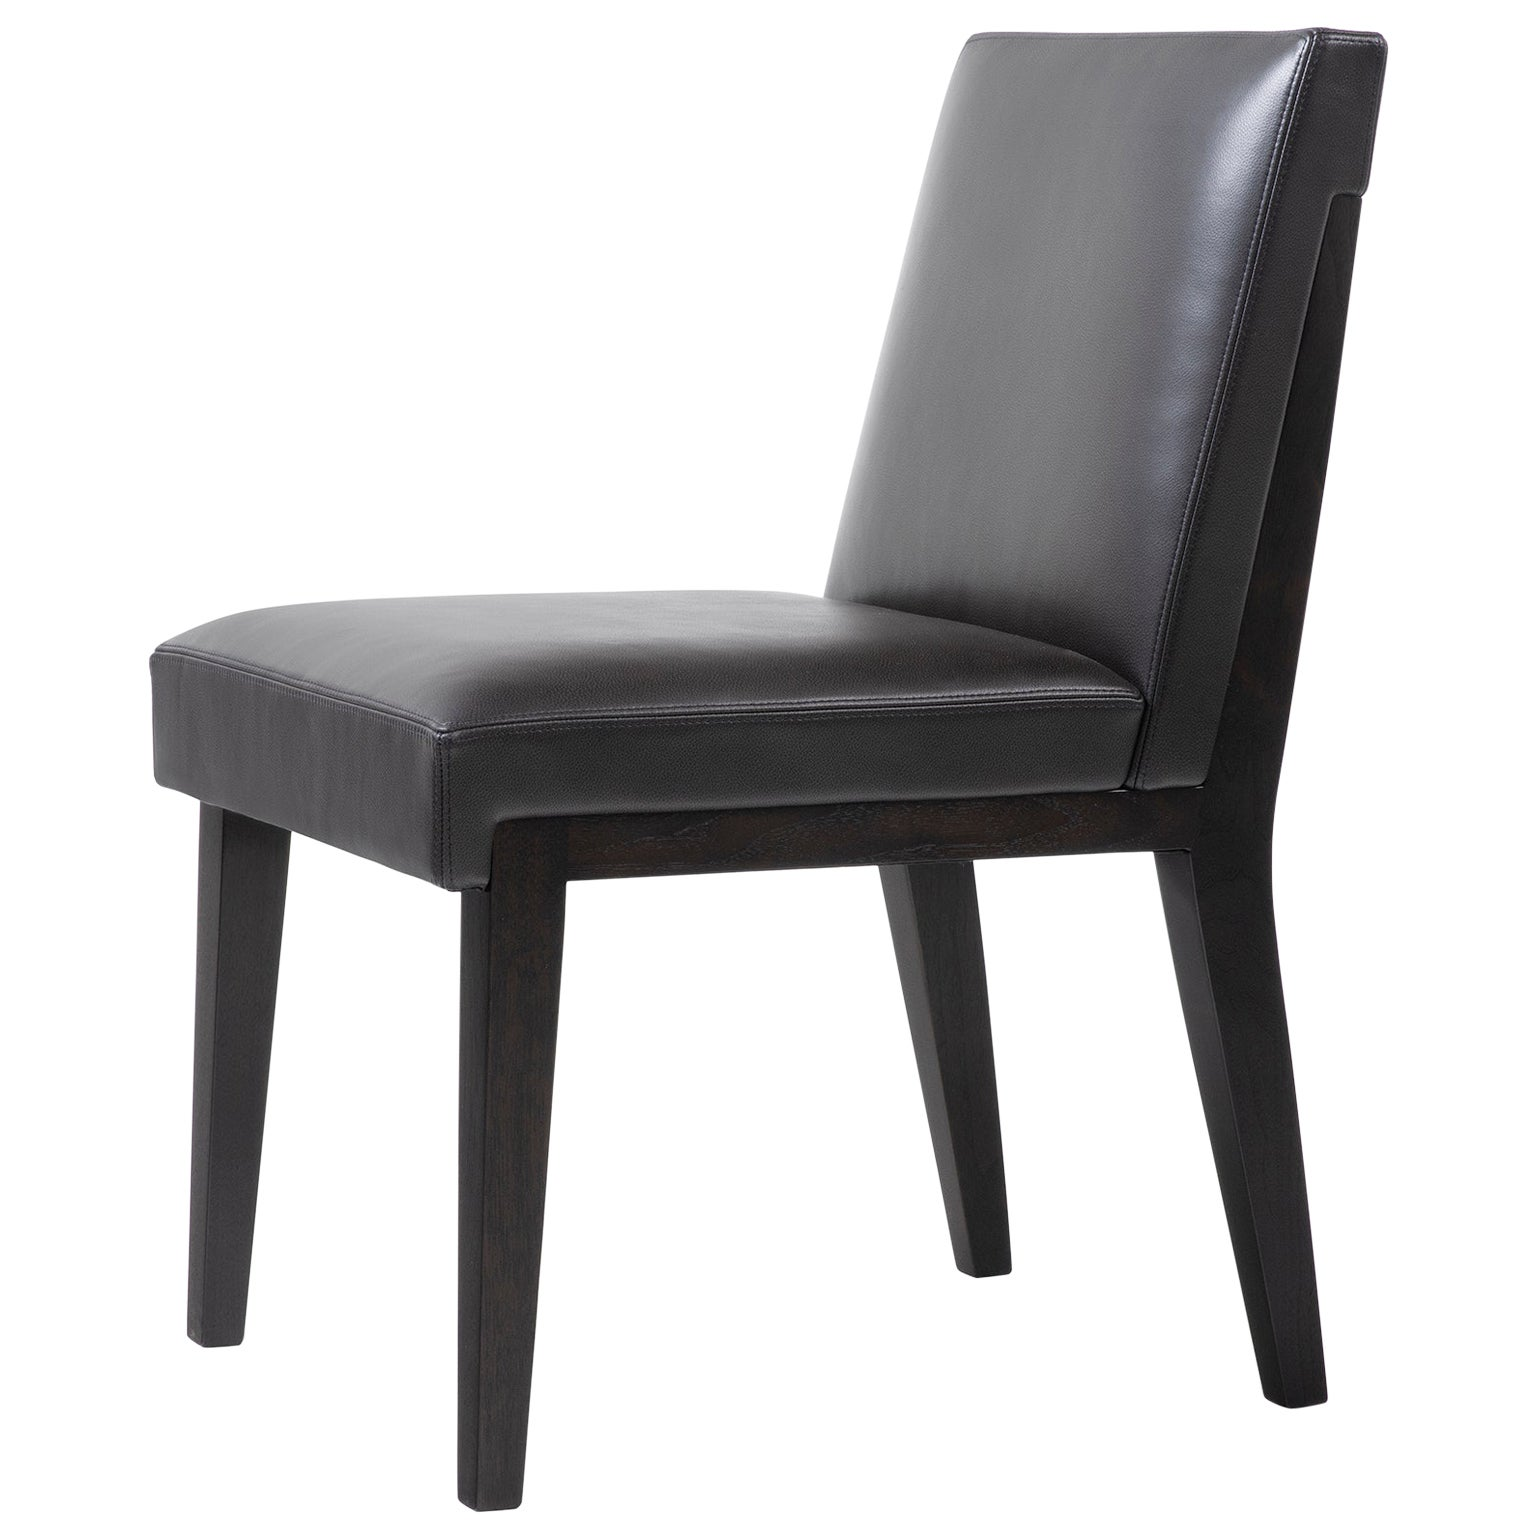 HOLLY HUNT Hampton Dining Side Chair Walnut Black Magic and Leather Upholstery